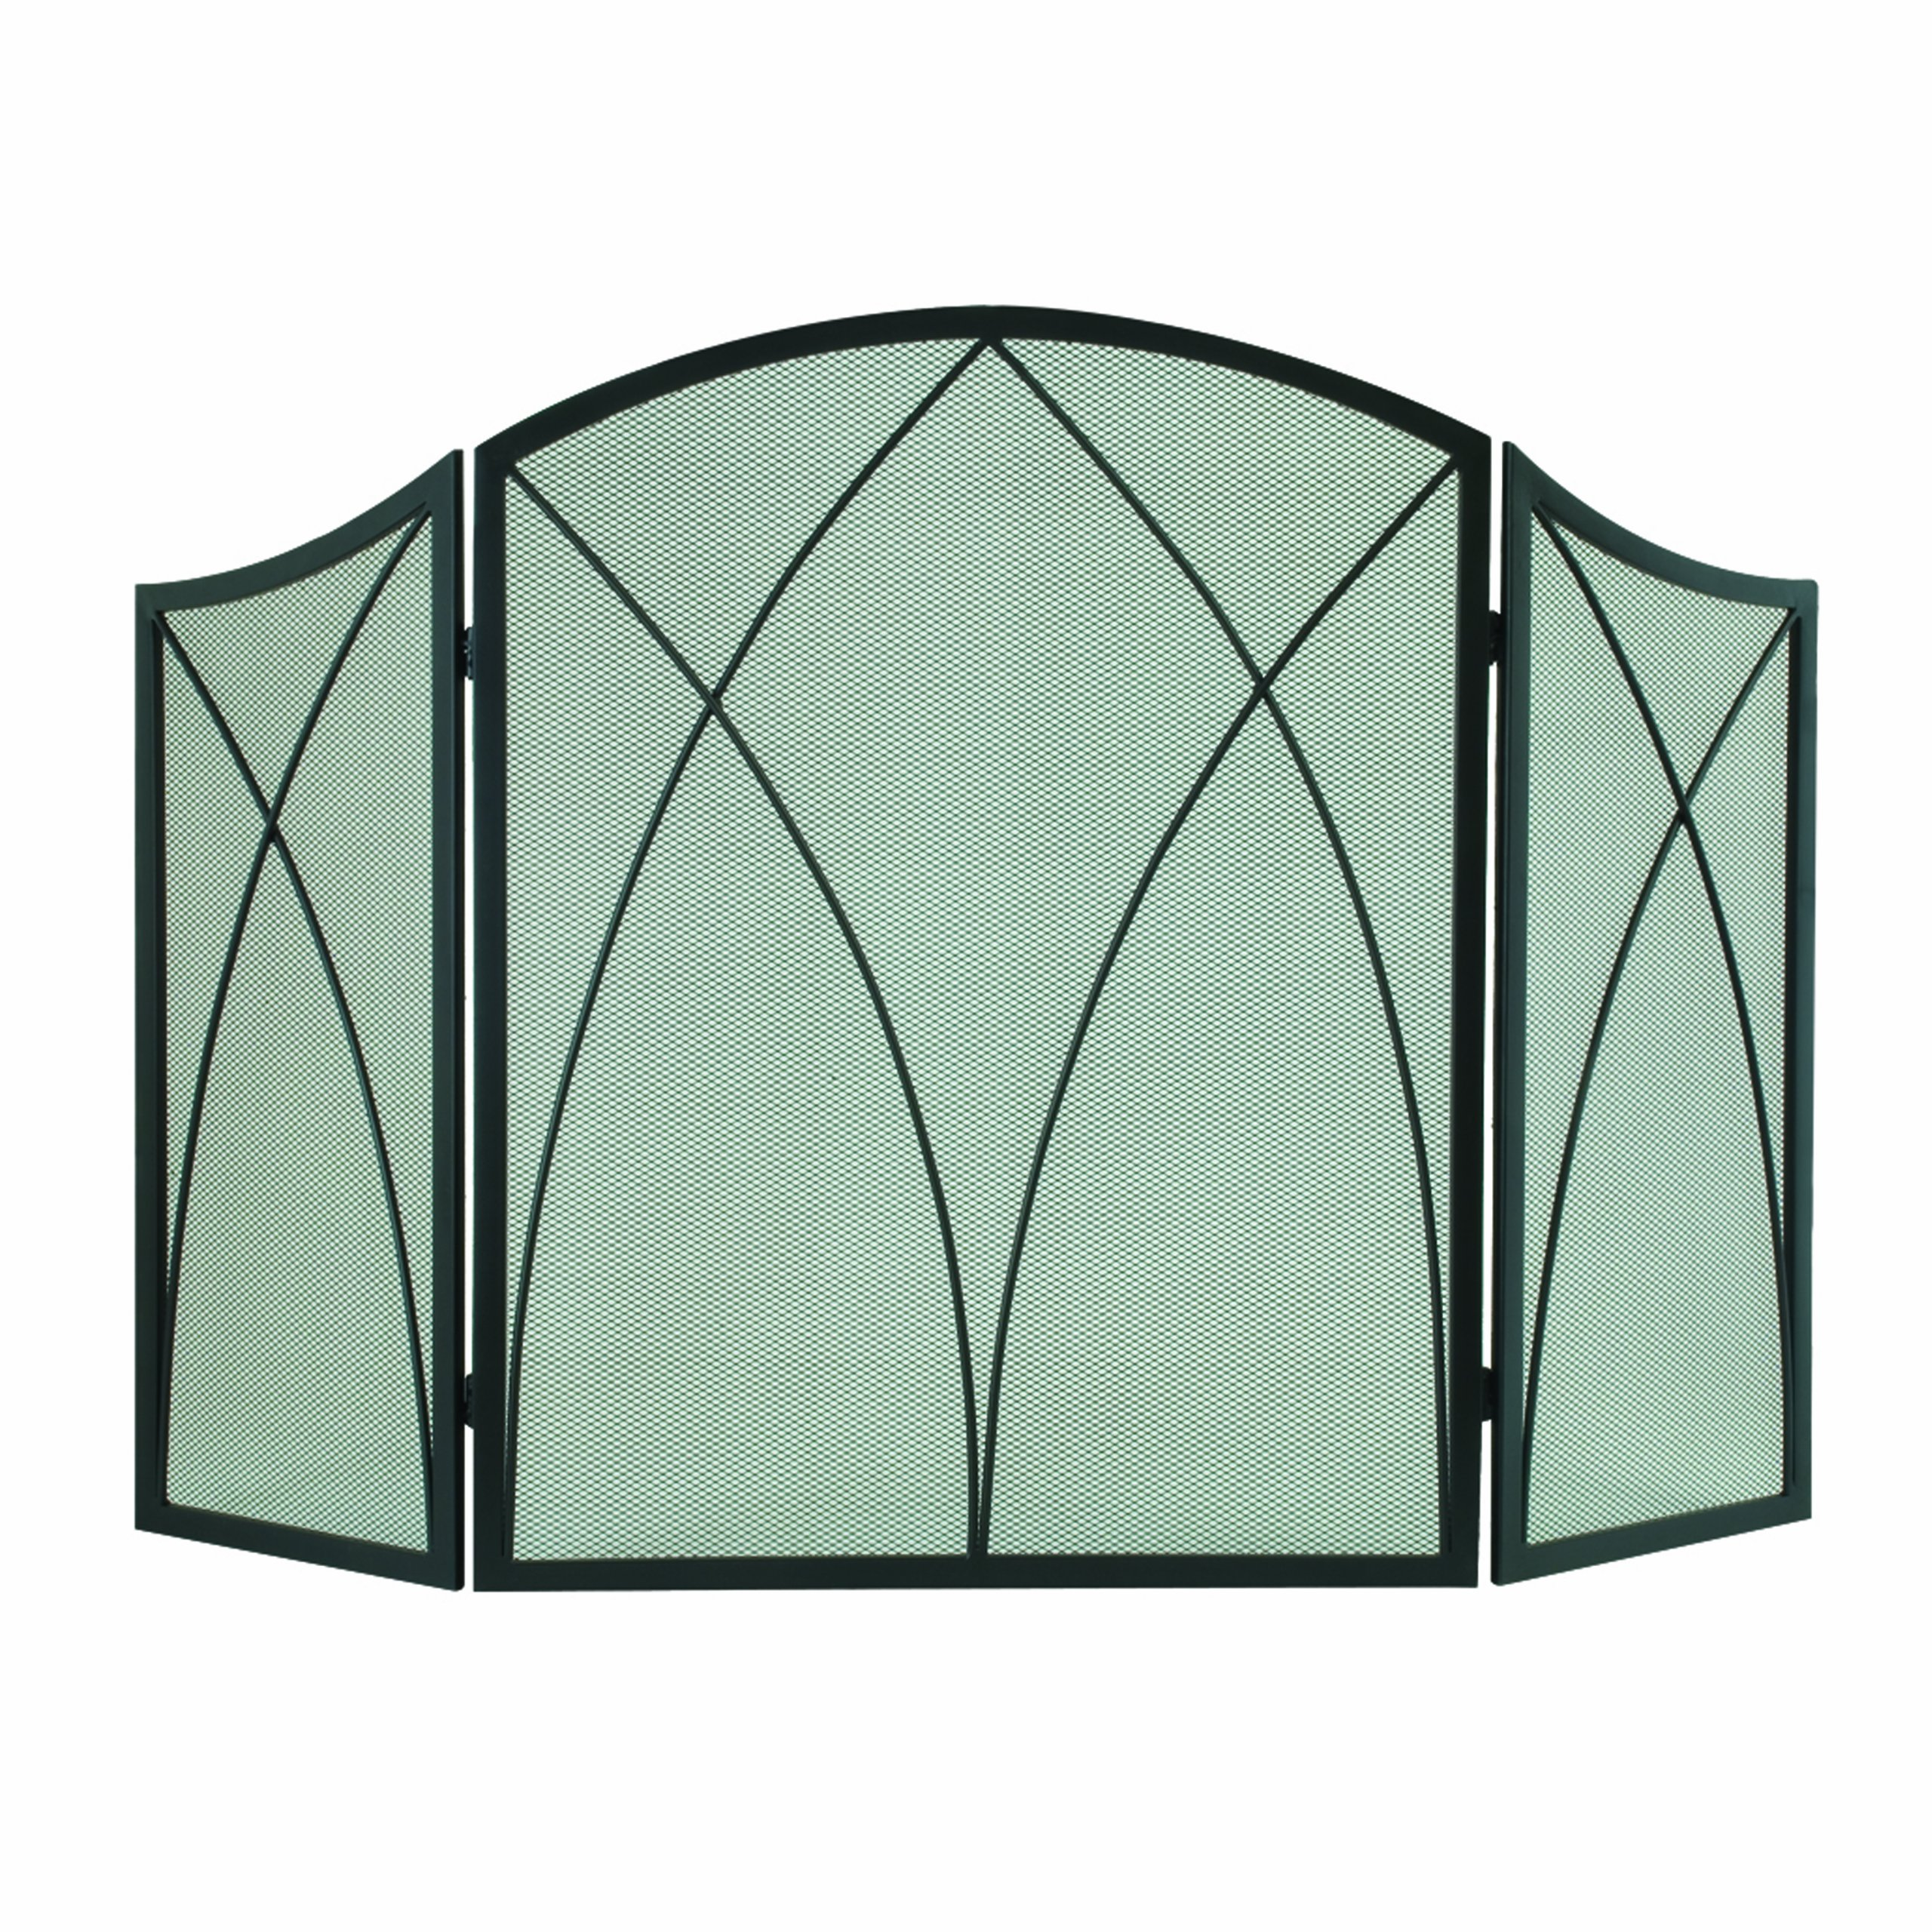 Pleasant Hearth Arched 3-Panel Victorian Gothic Fireplace Screen by Pleasant Hearth